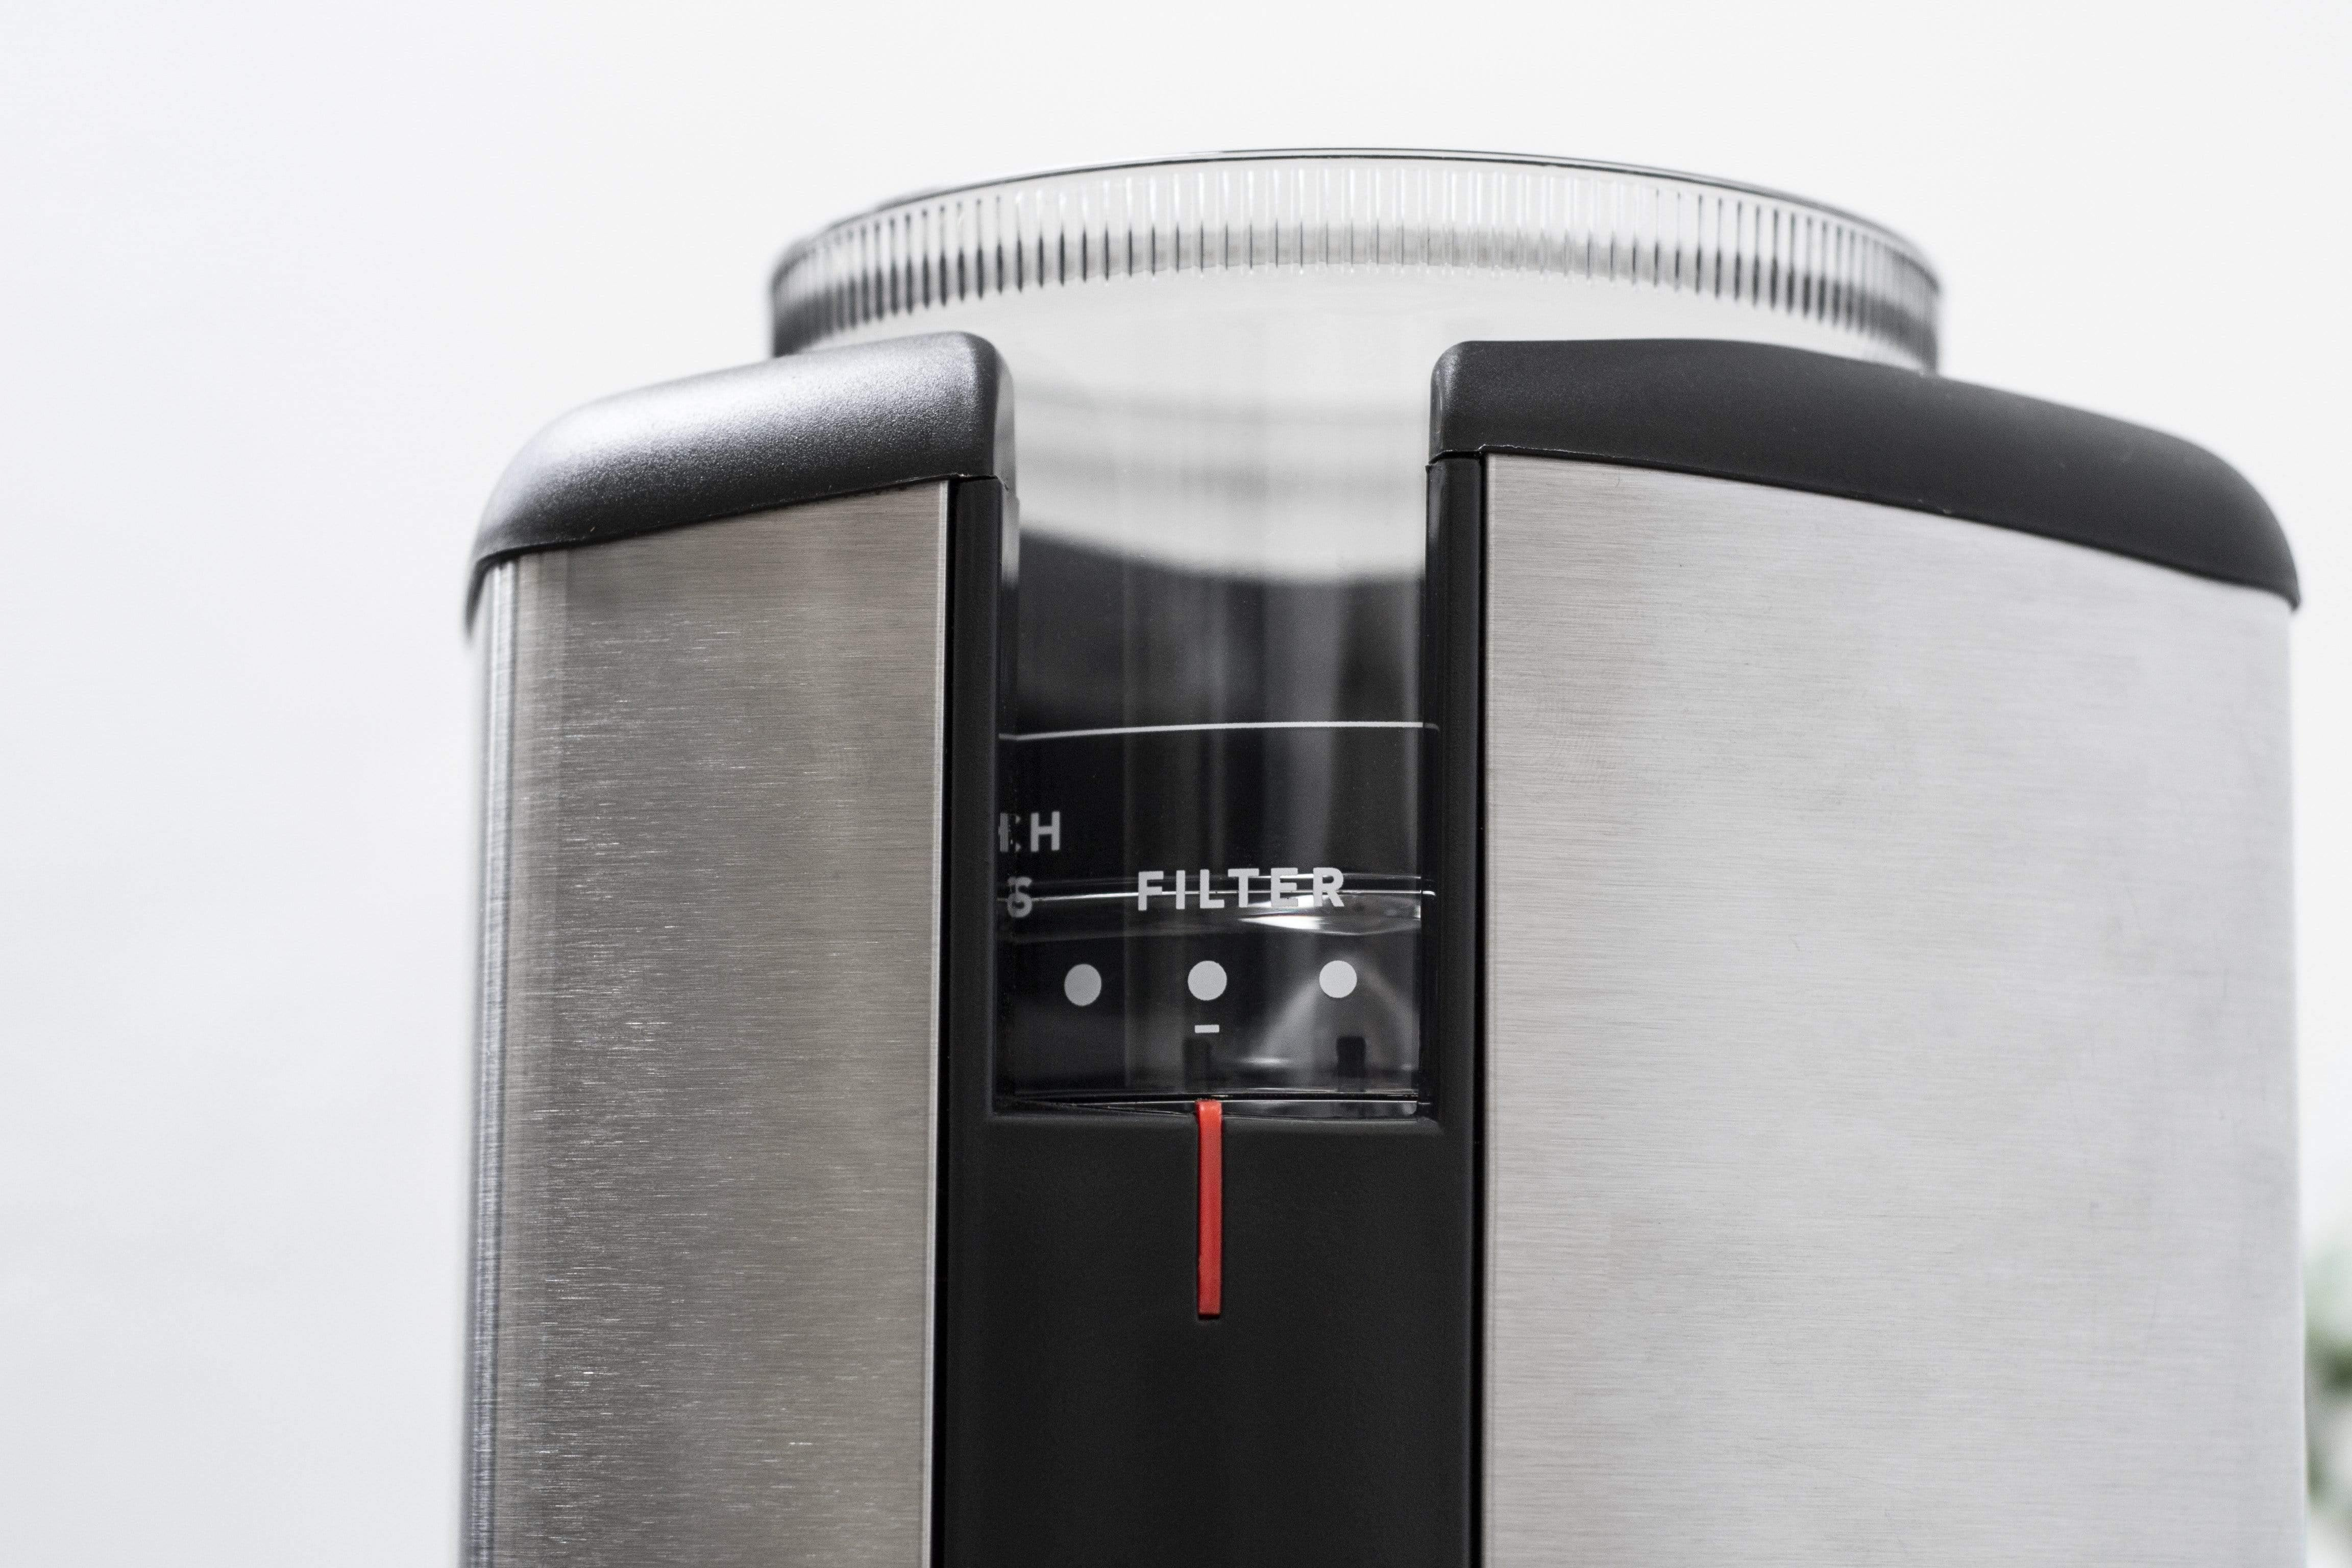 silver wilfa svart electric coffee grinder, close up on brewing selection, filter method chosen